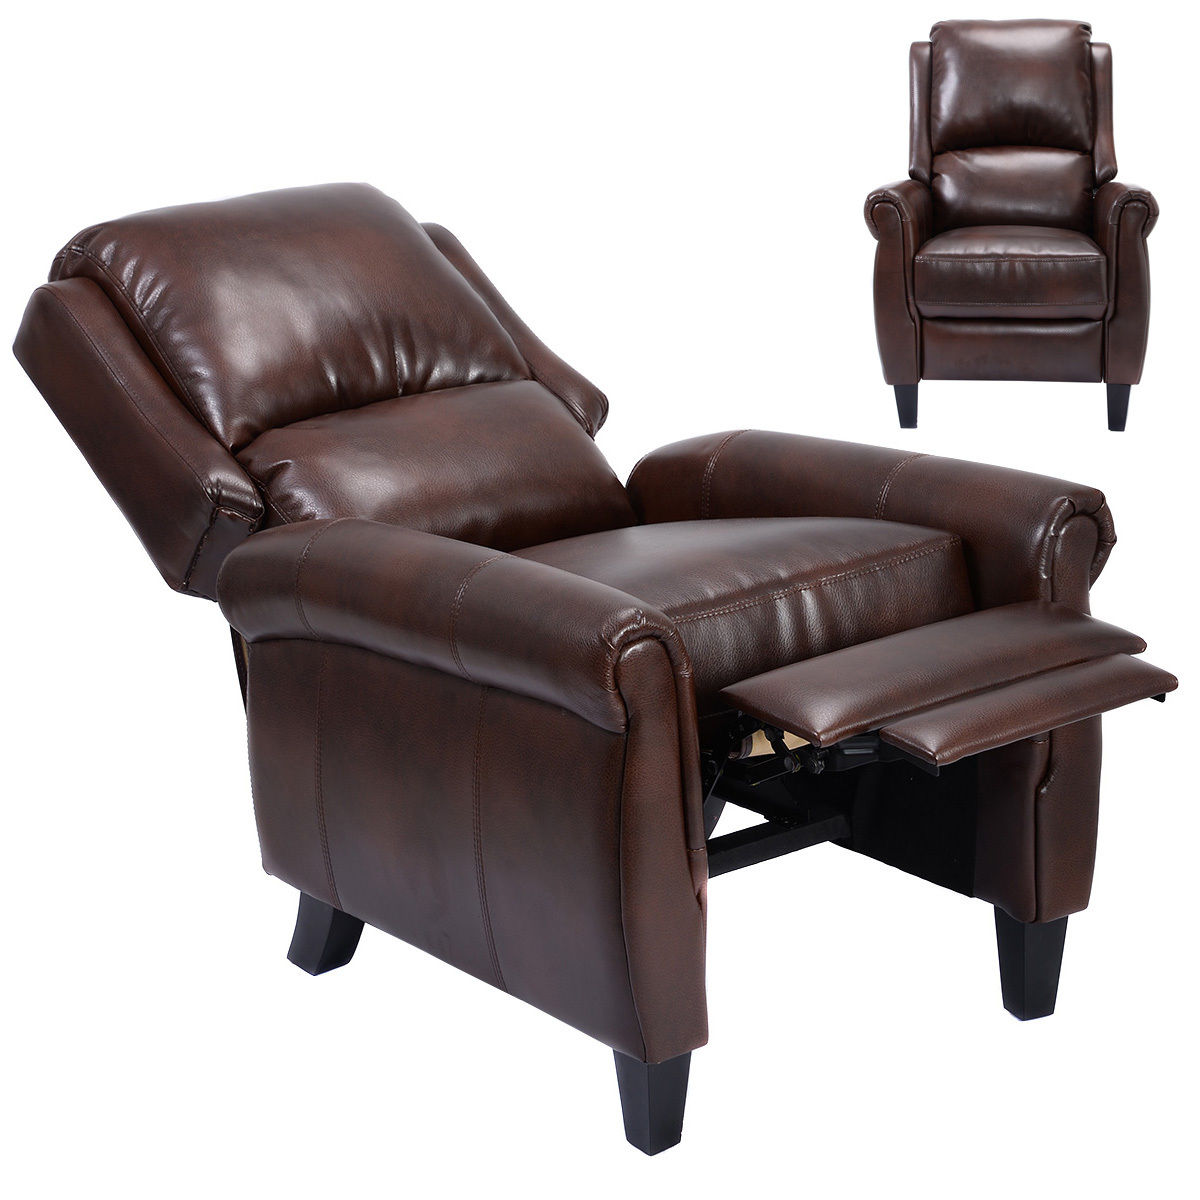 Rocking Accent Chairs Brown Accent Chair Recliner With Leg Rest